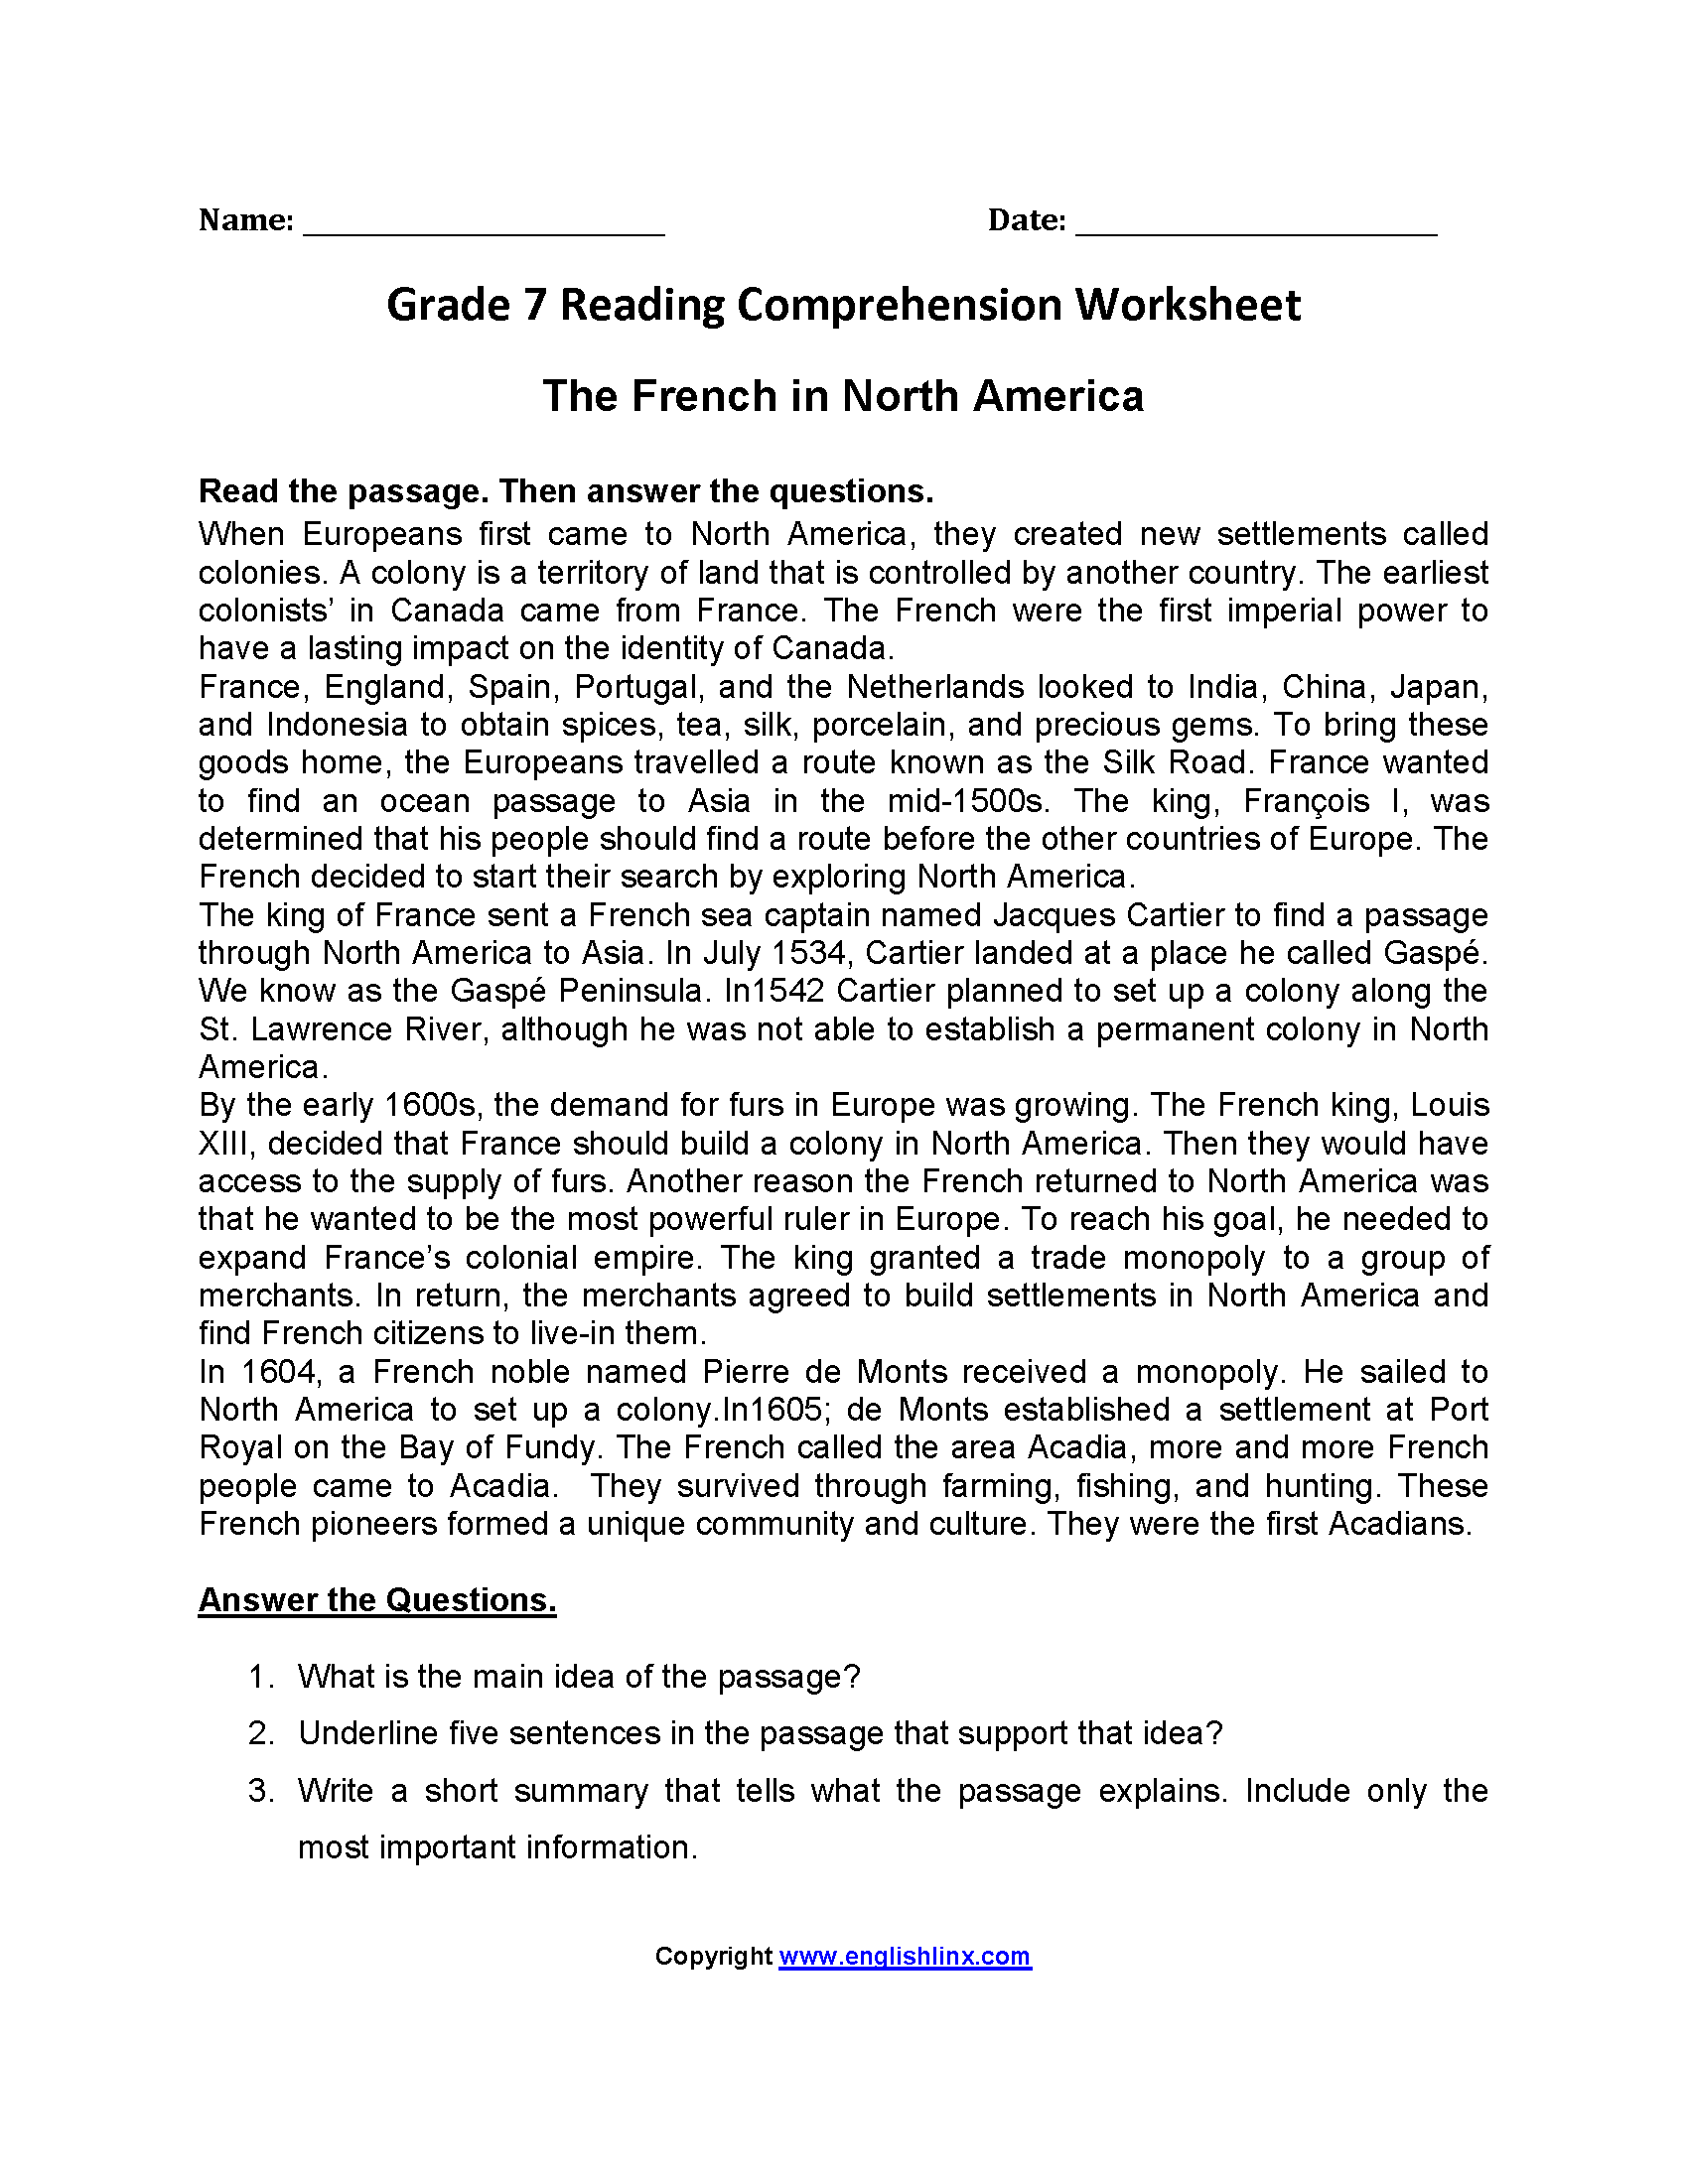 Worksheets 7th Grade Reading Comprehension Worksheets reading worksheets seventh grade worksheets